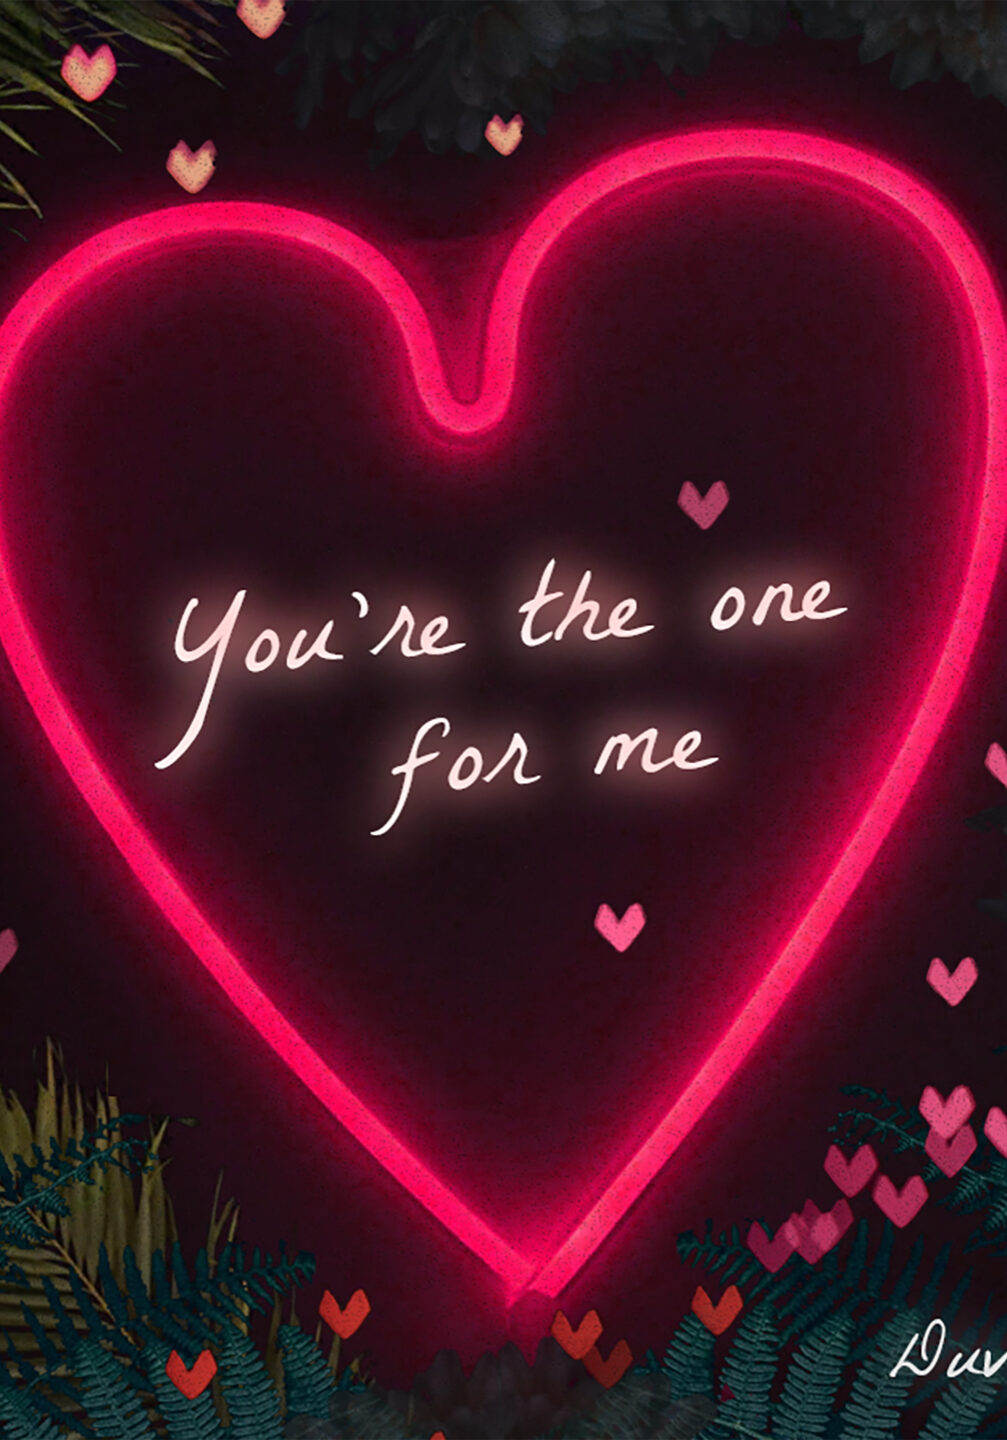 Your're the One For Me - Duvestar (Marie Glad and Oisin Lunny)